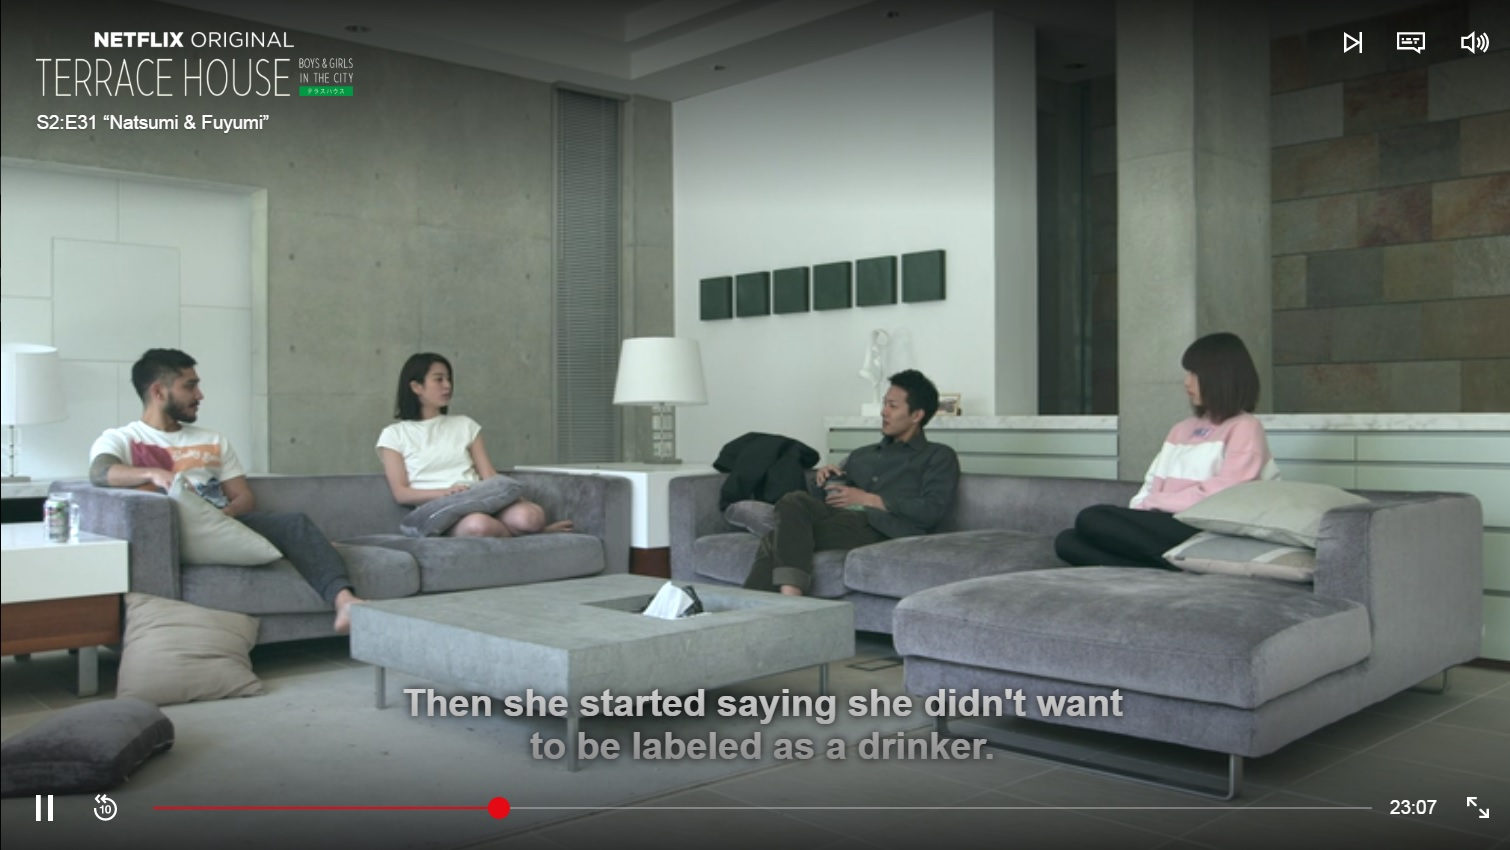 Netflix s terrace house is this the real life is this for Terrace house on netflix